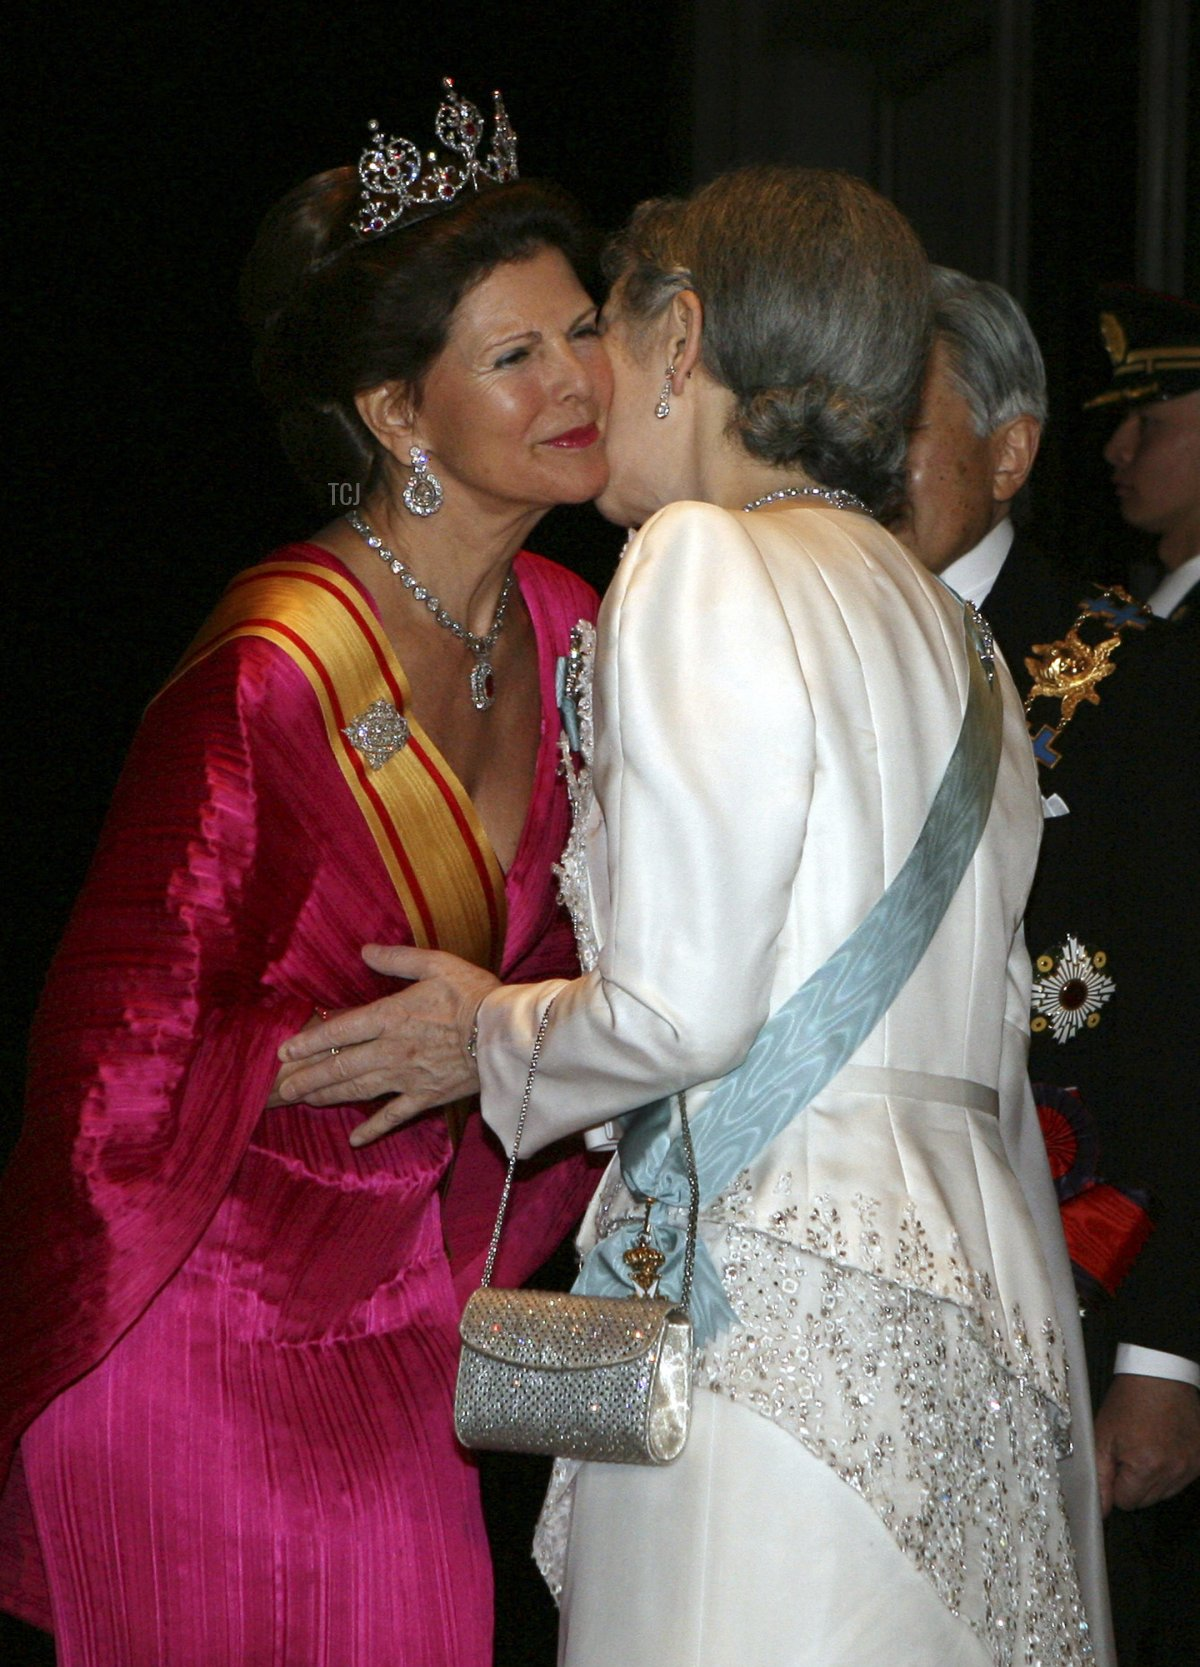 King Carl XVI Gustaf and Queen Silvia of Sweden arrive for dinner at the Imperial Palace on March 26, 2007 in Tokyo, Japan